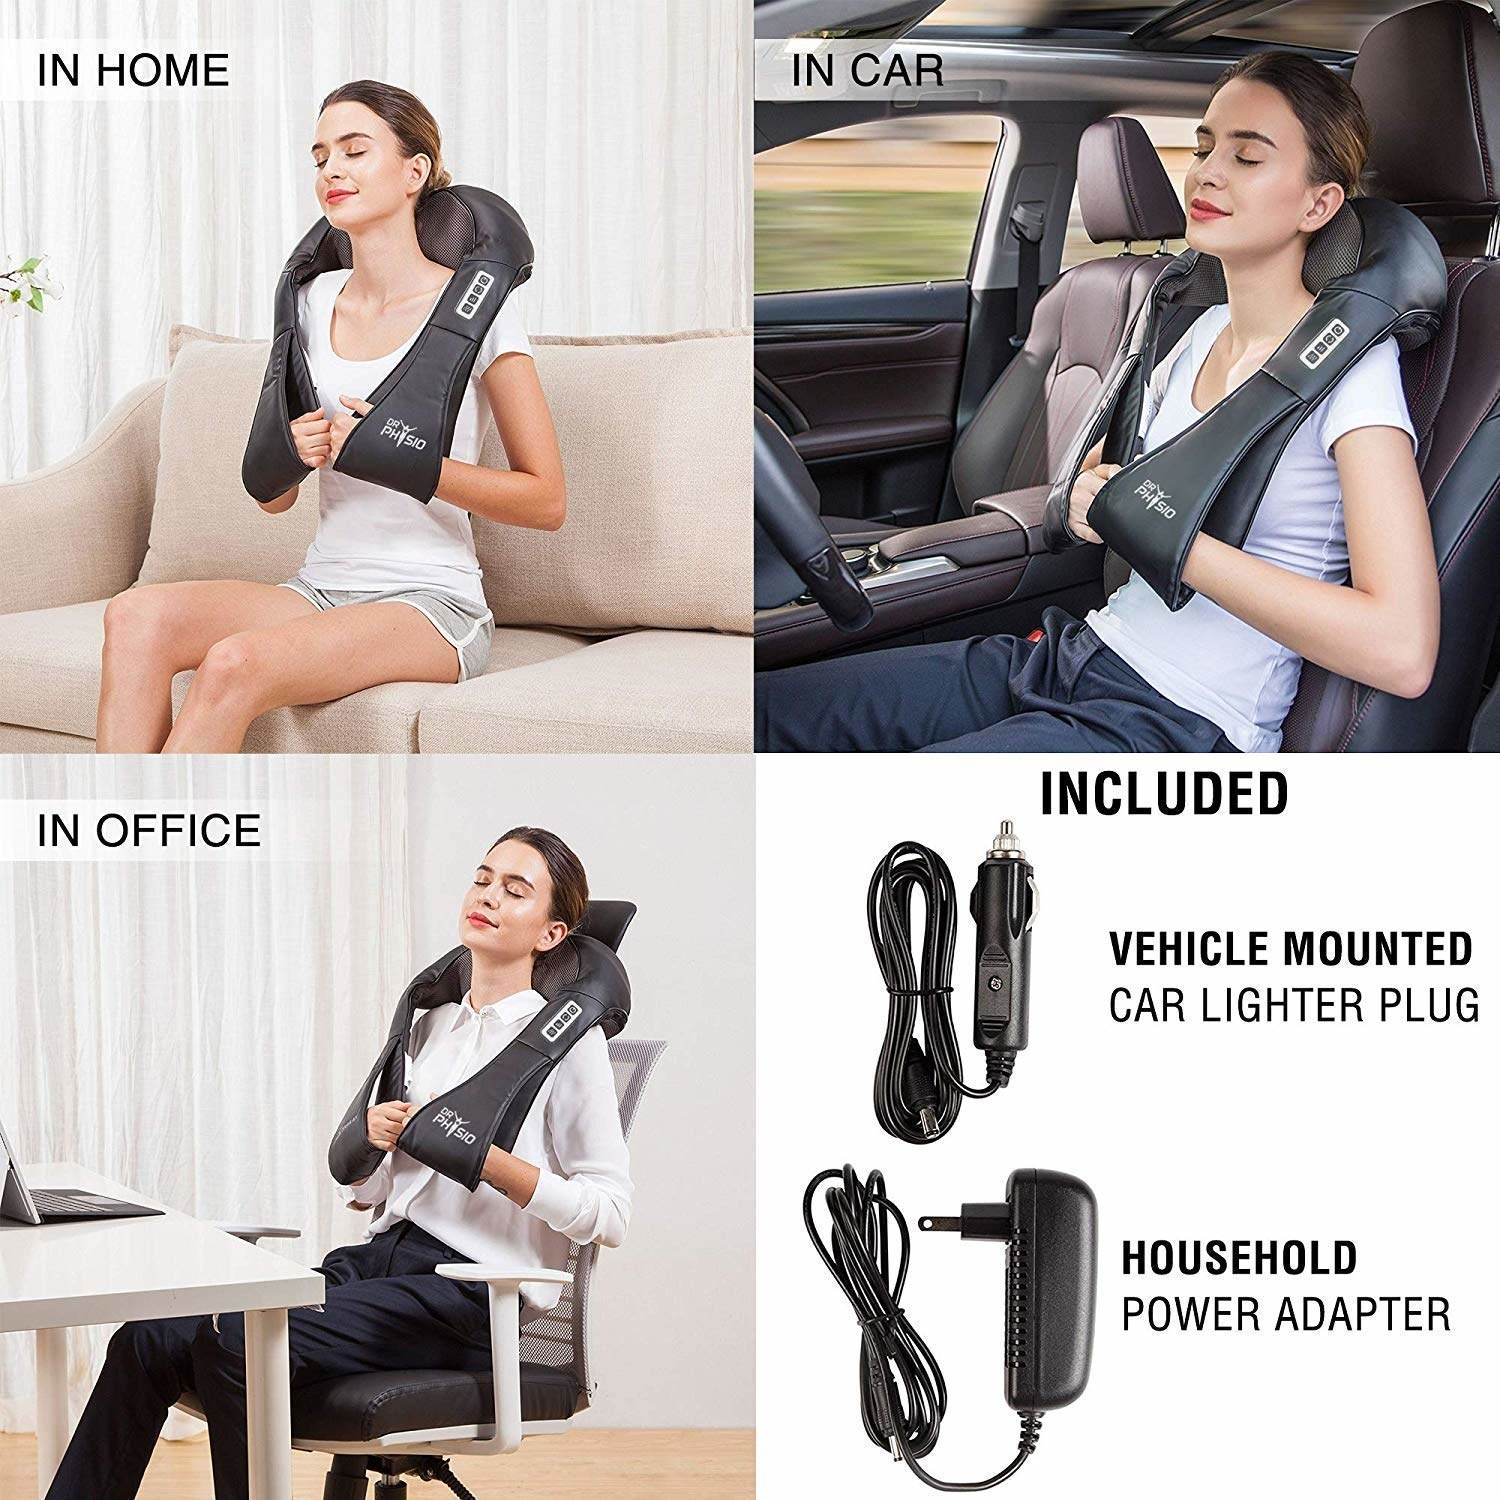 Various places where you can use the massager, such as the car, home, and office.